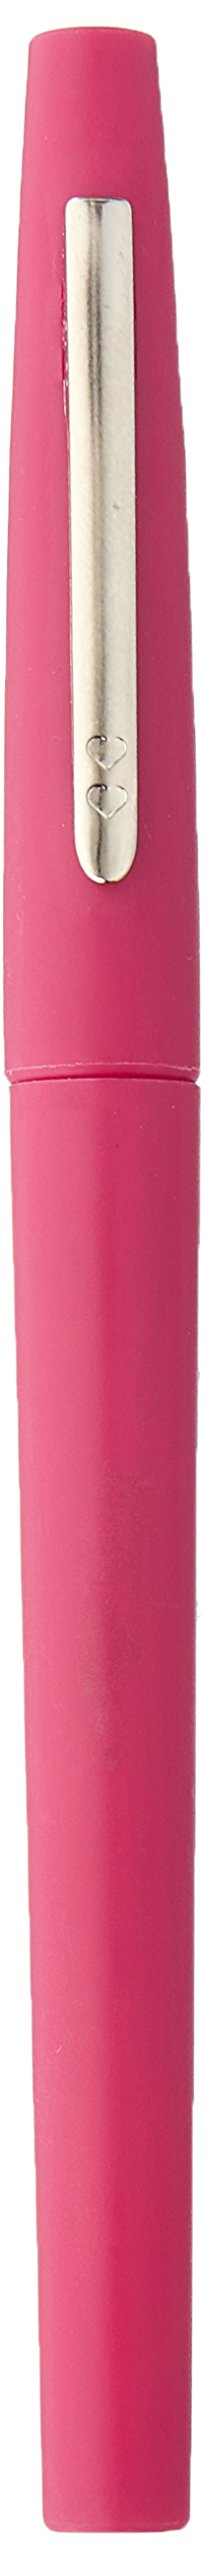 Paper Mate Permate Flair Point Pens, Magenta (1806705) by Paper Mate (Image #1)